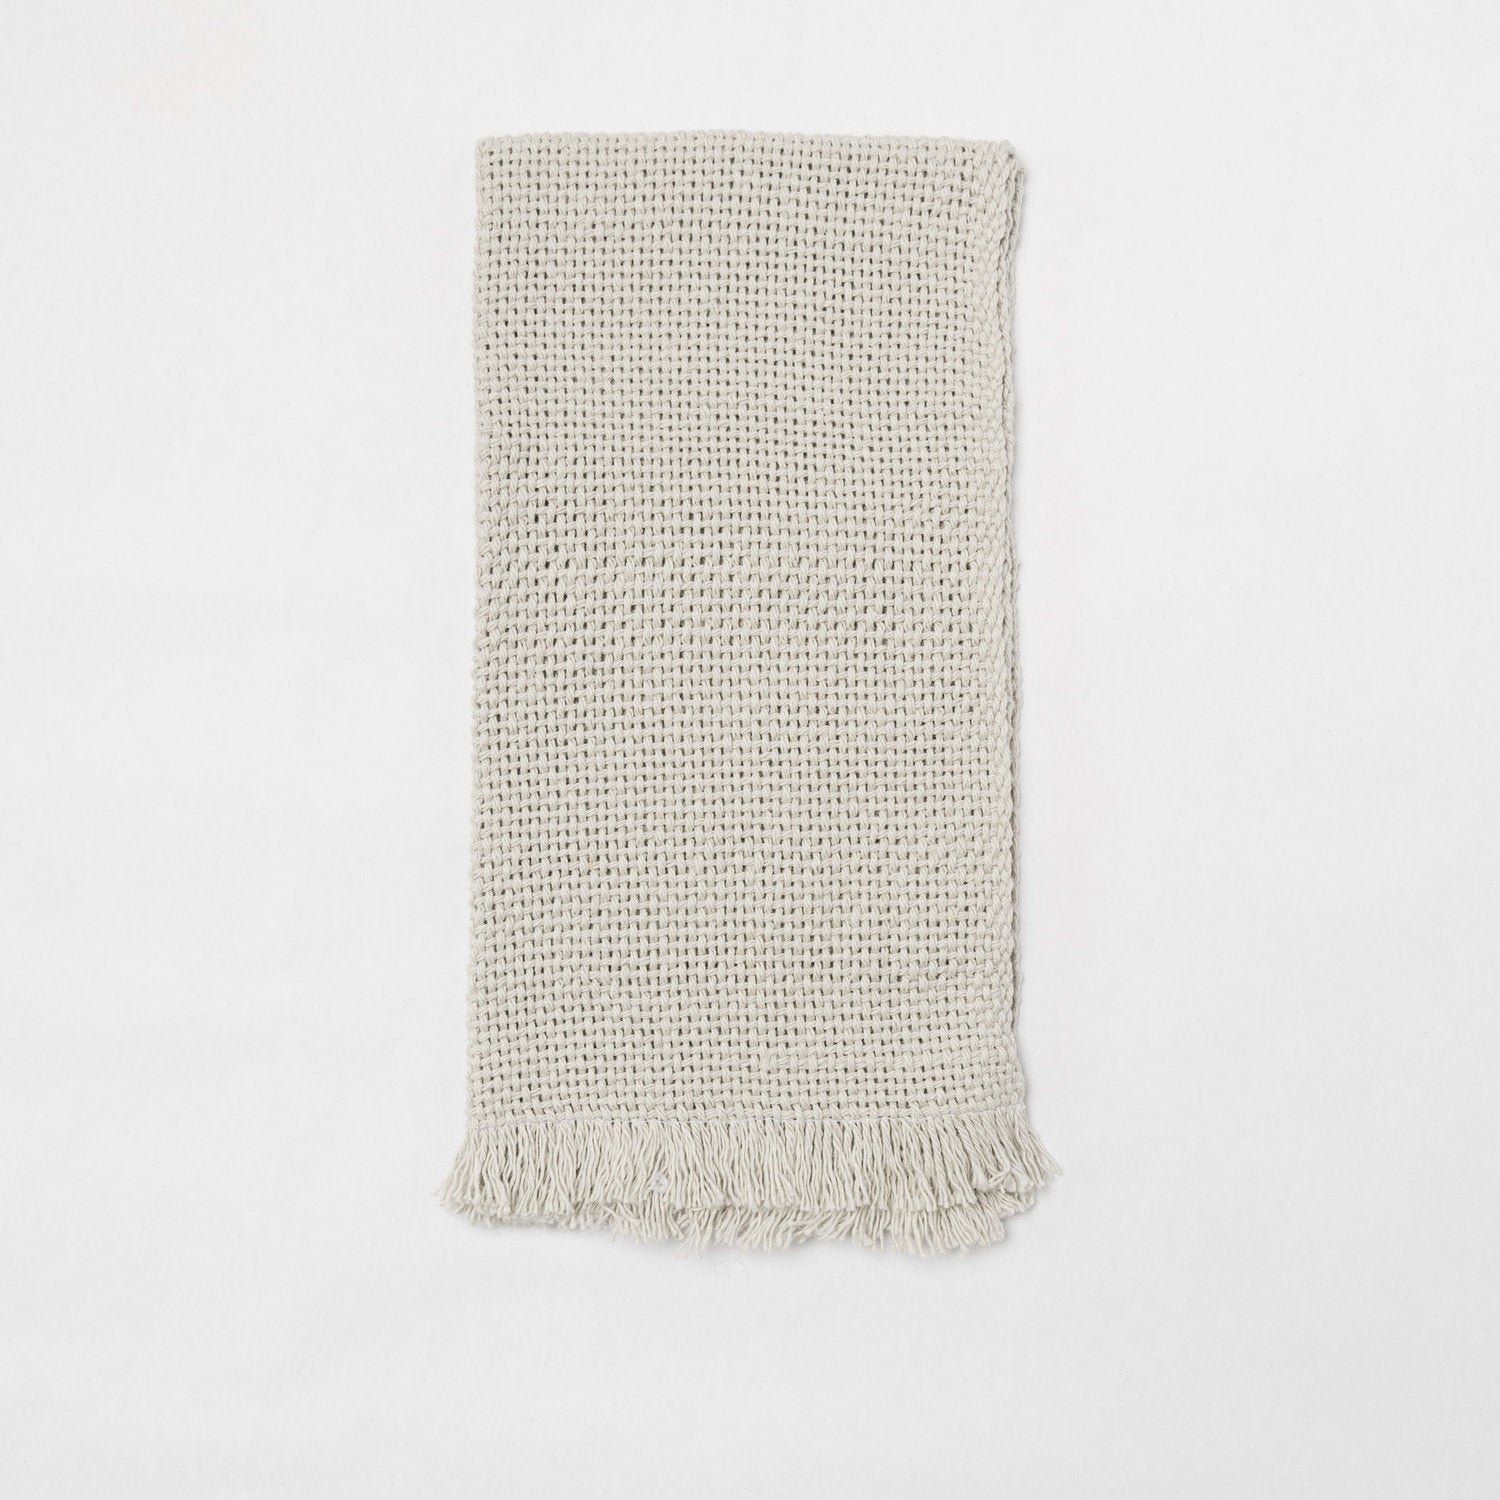 KD Weave Greige Hand Towel, Set of 2